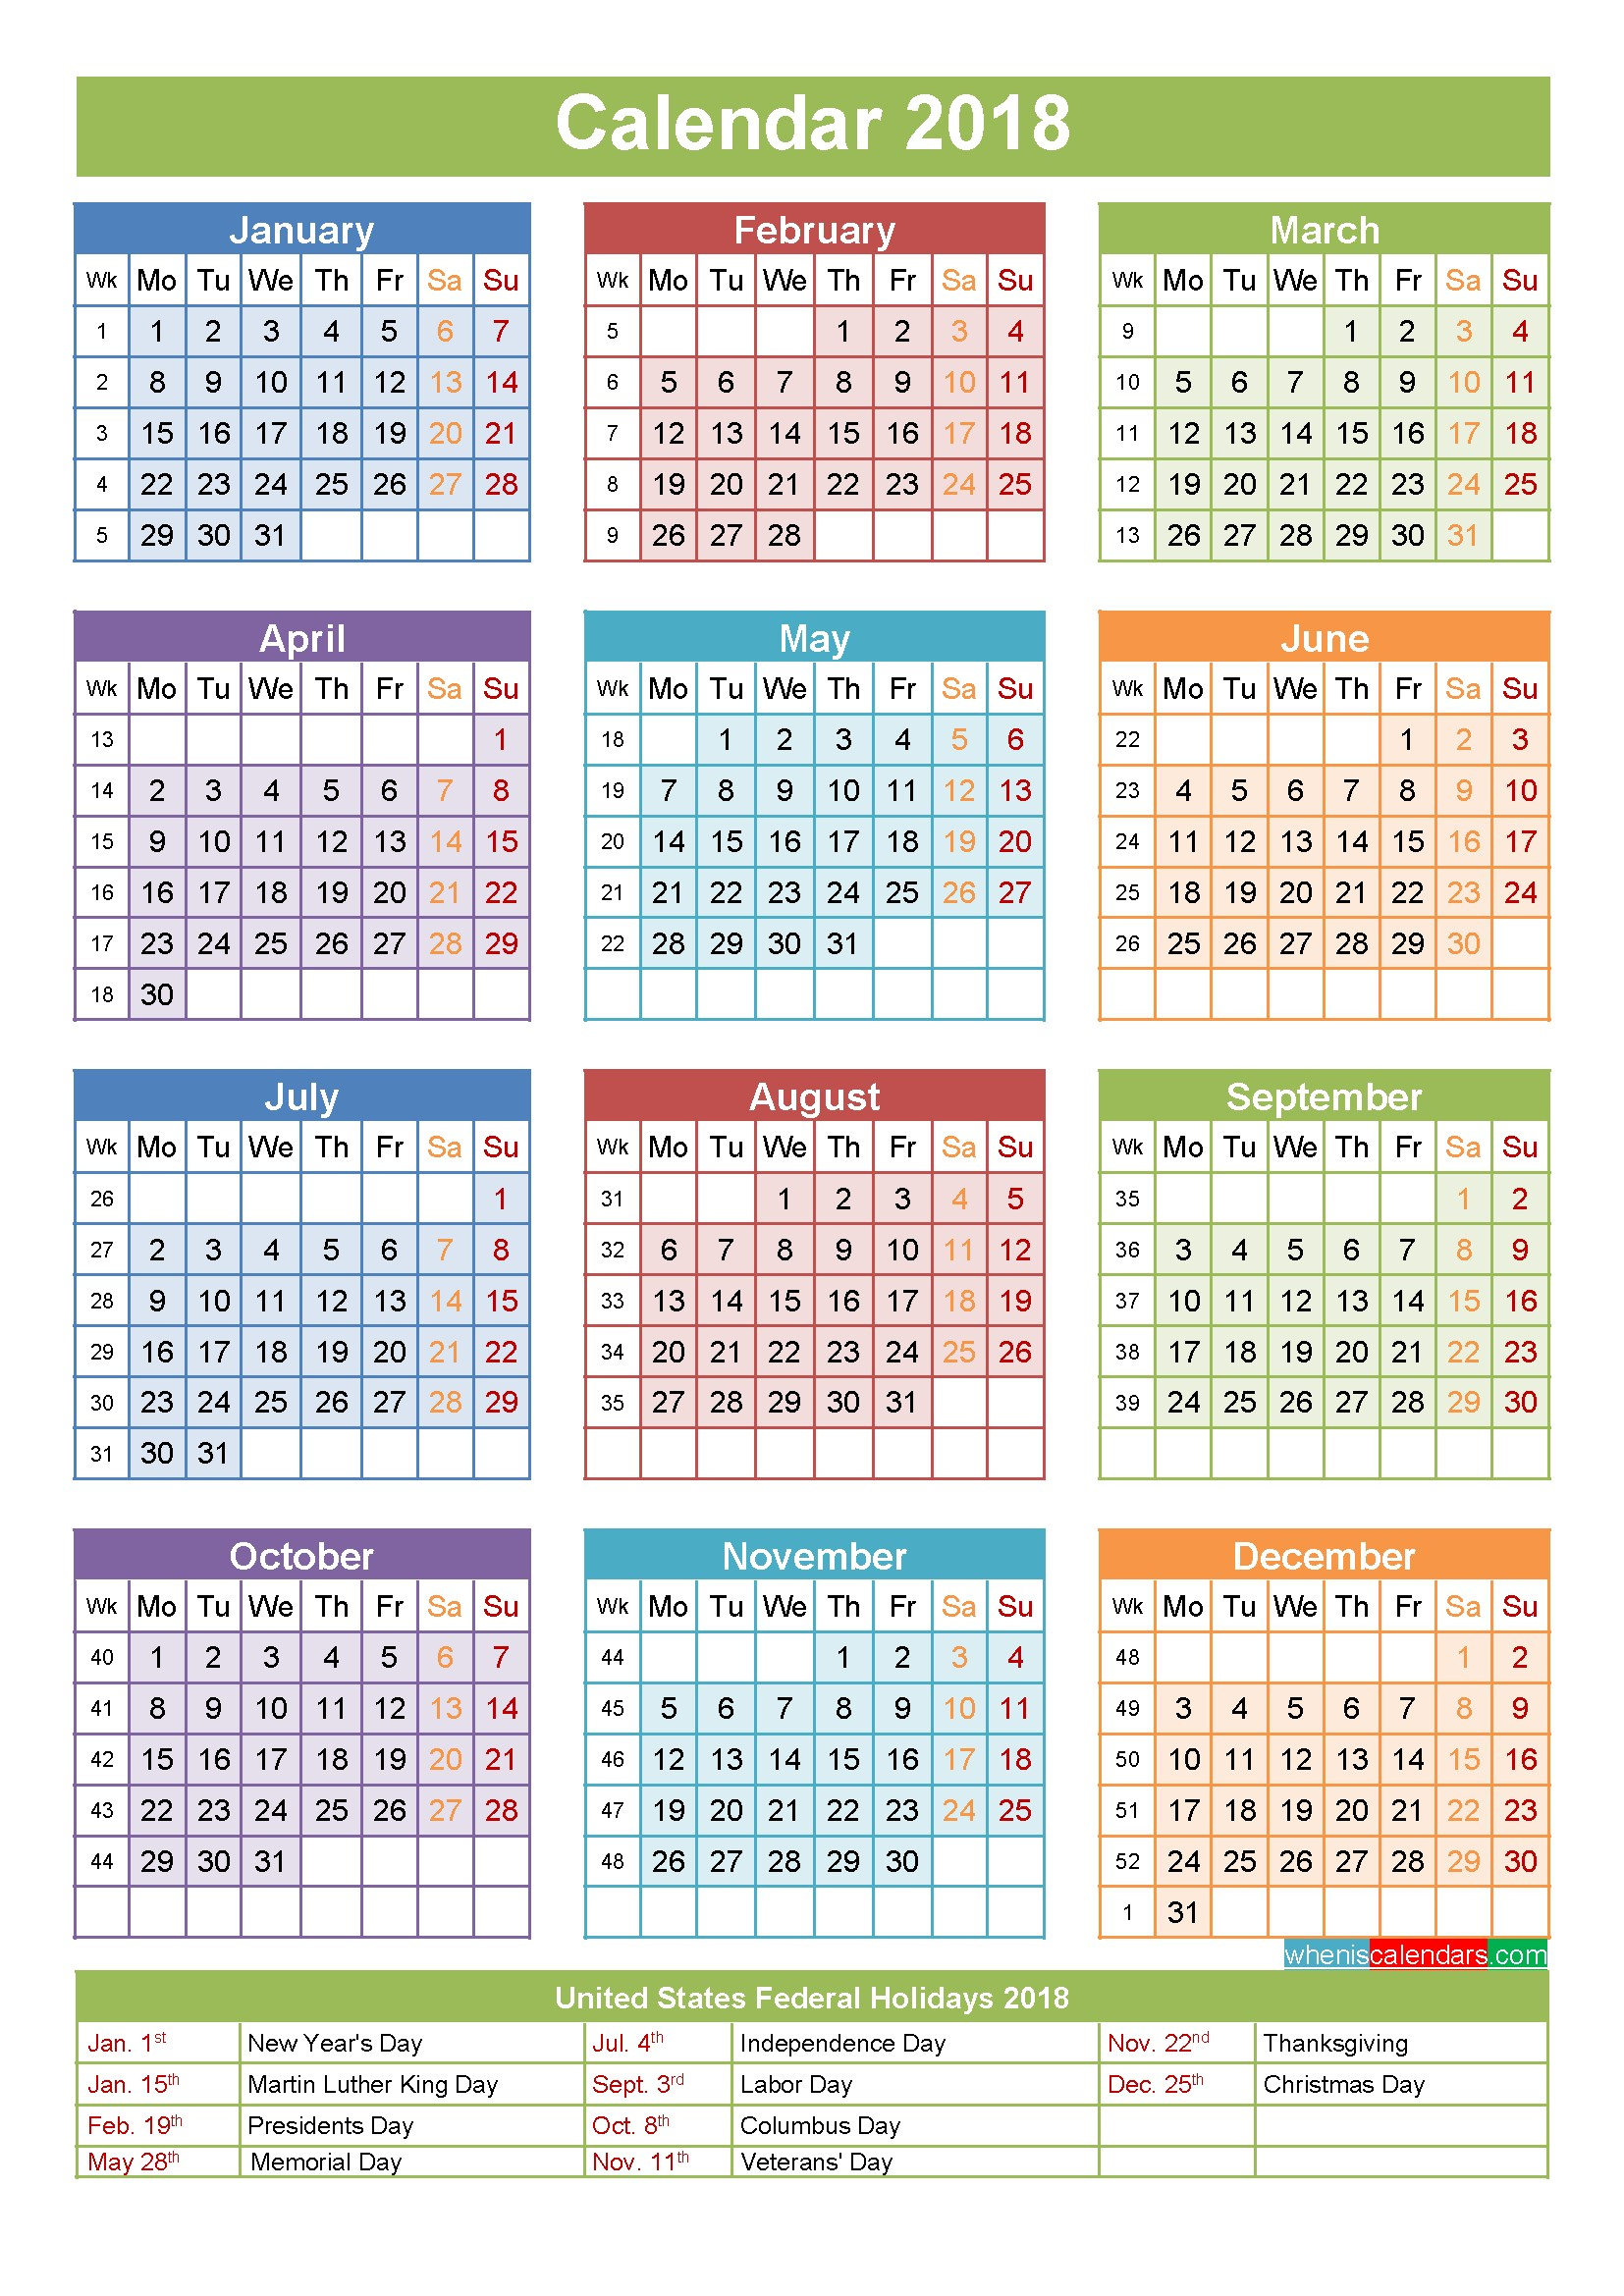 2 2019 2018 Hindu Panchang Calendar | Calendar Template inside Calender Of October 2019 According To Tithi